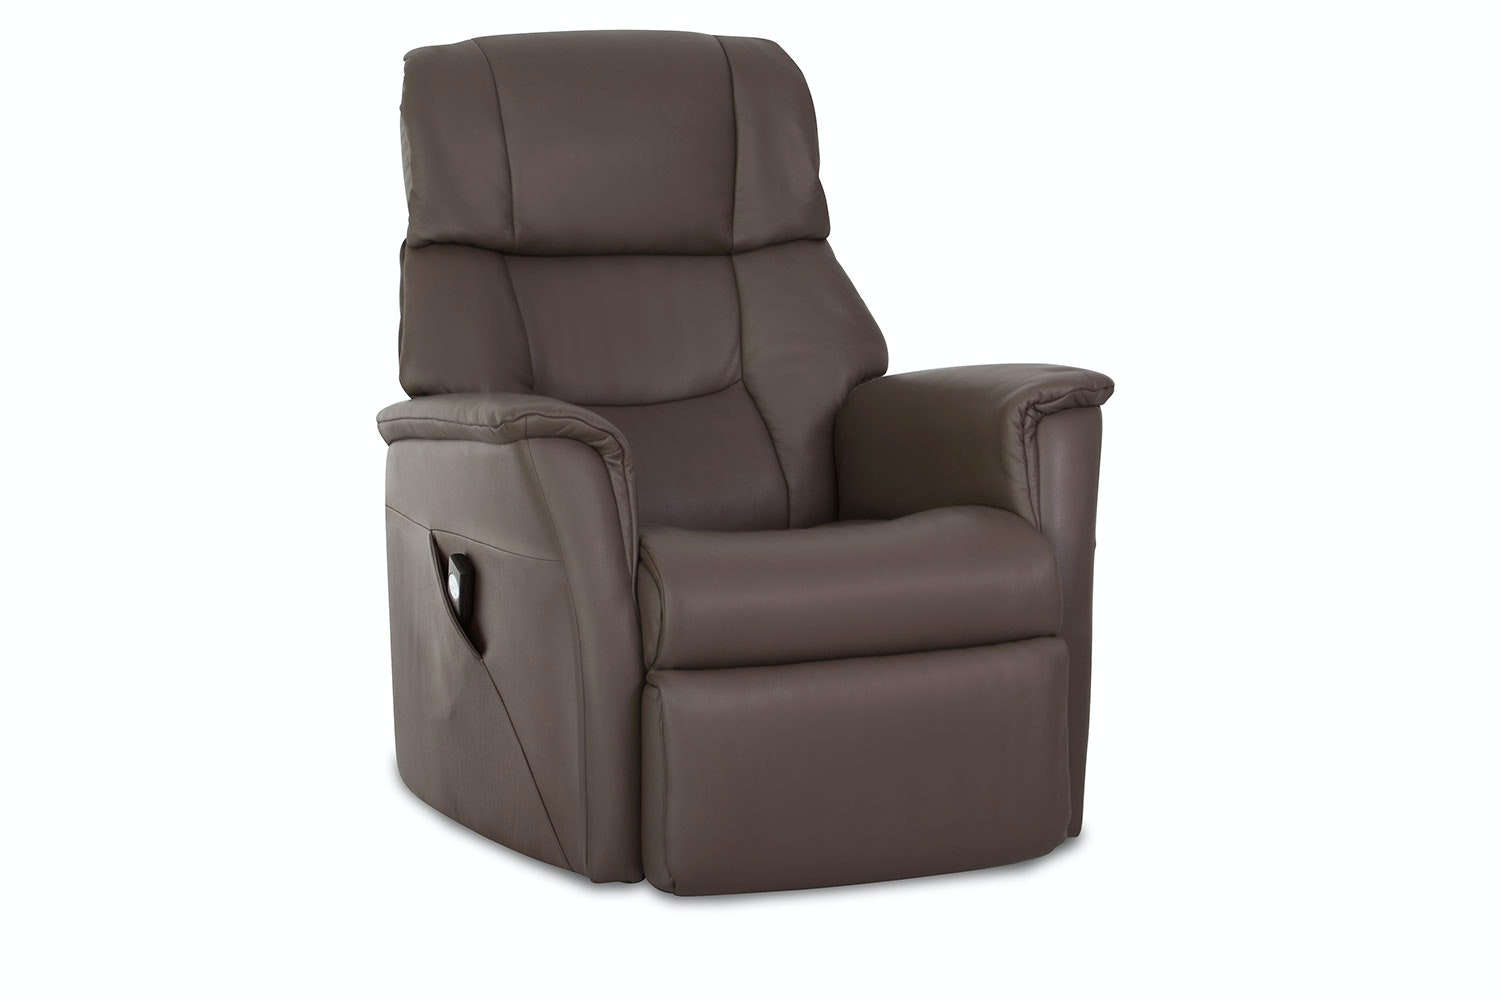 Ventura Leather Multi Function Recliner Chair - Standard - Prime - IMG